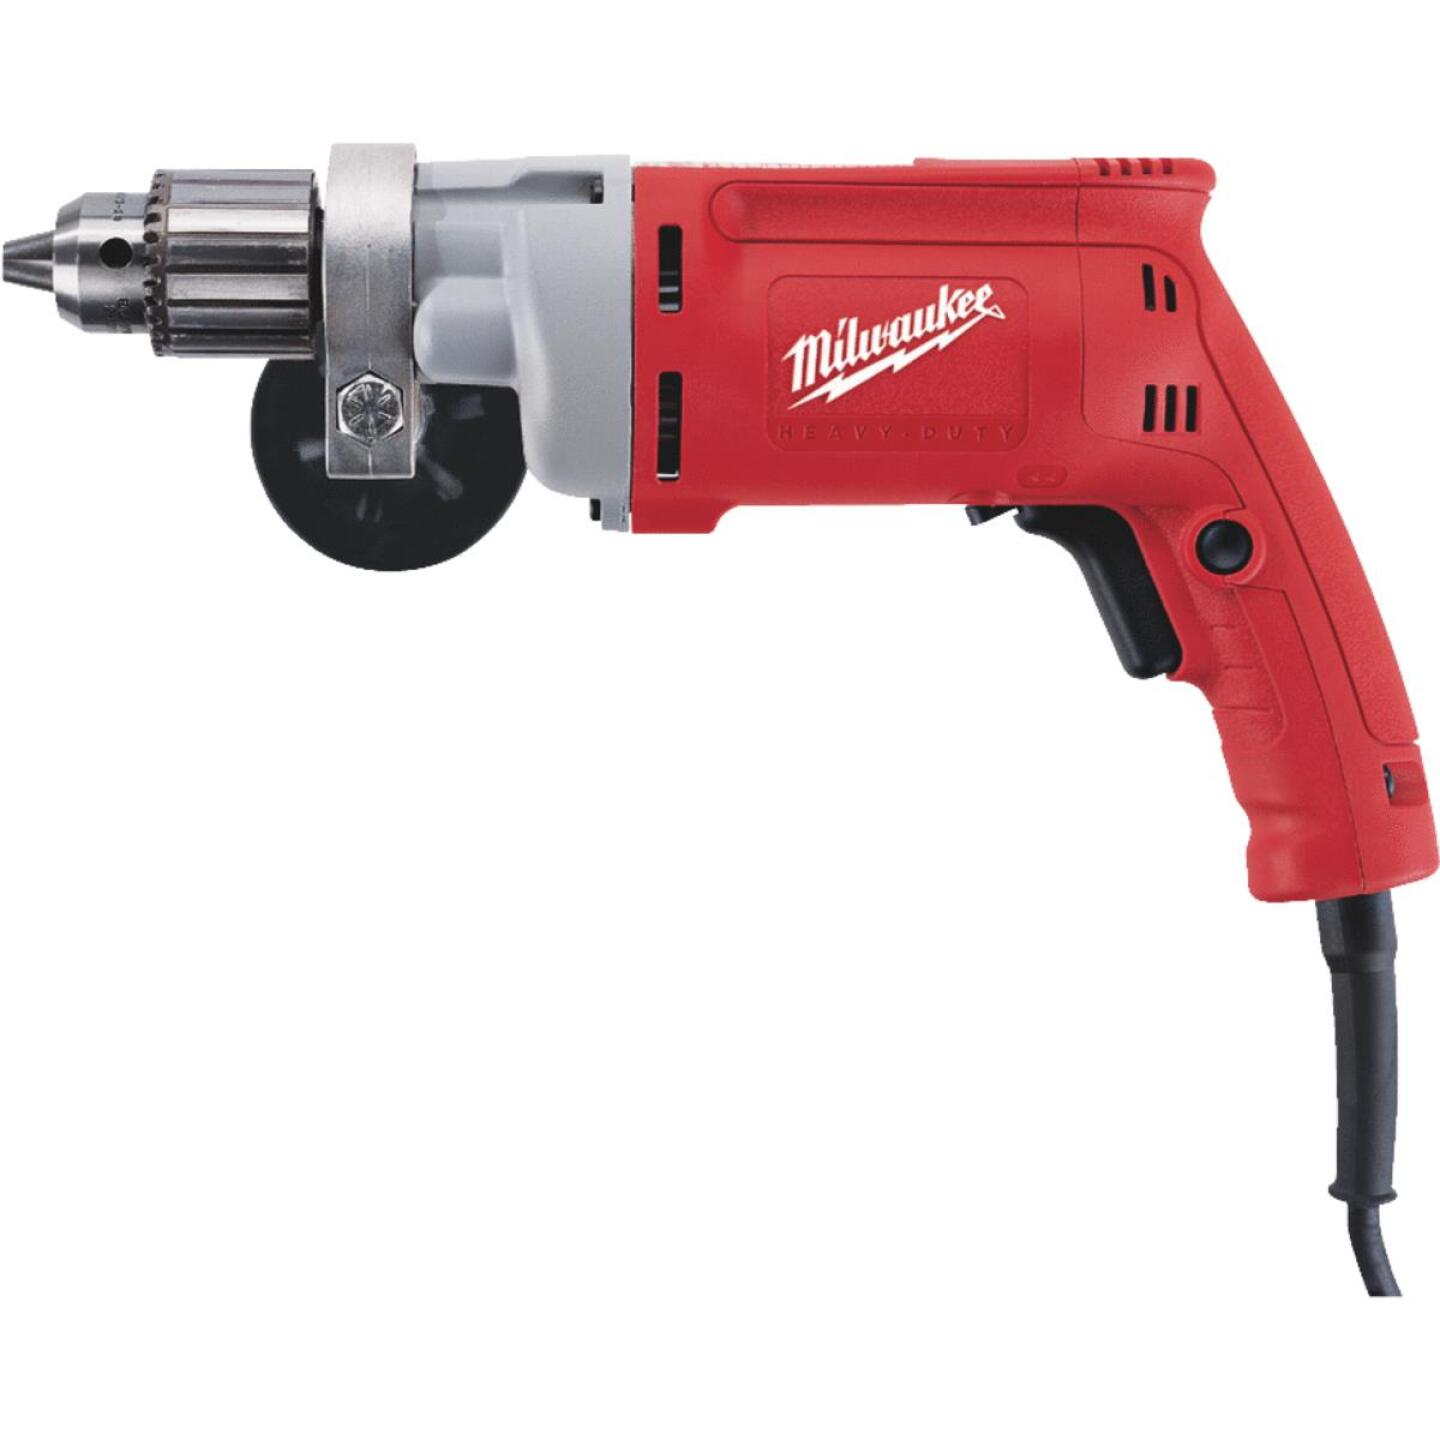 Milwaukee Magnum 1/2 In. 8-Amp Keyed Electric Drill with Textured Grip Image 1